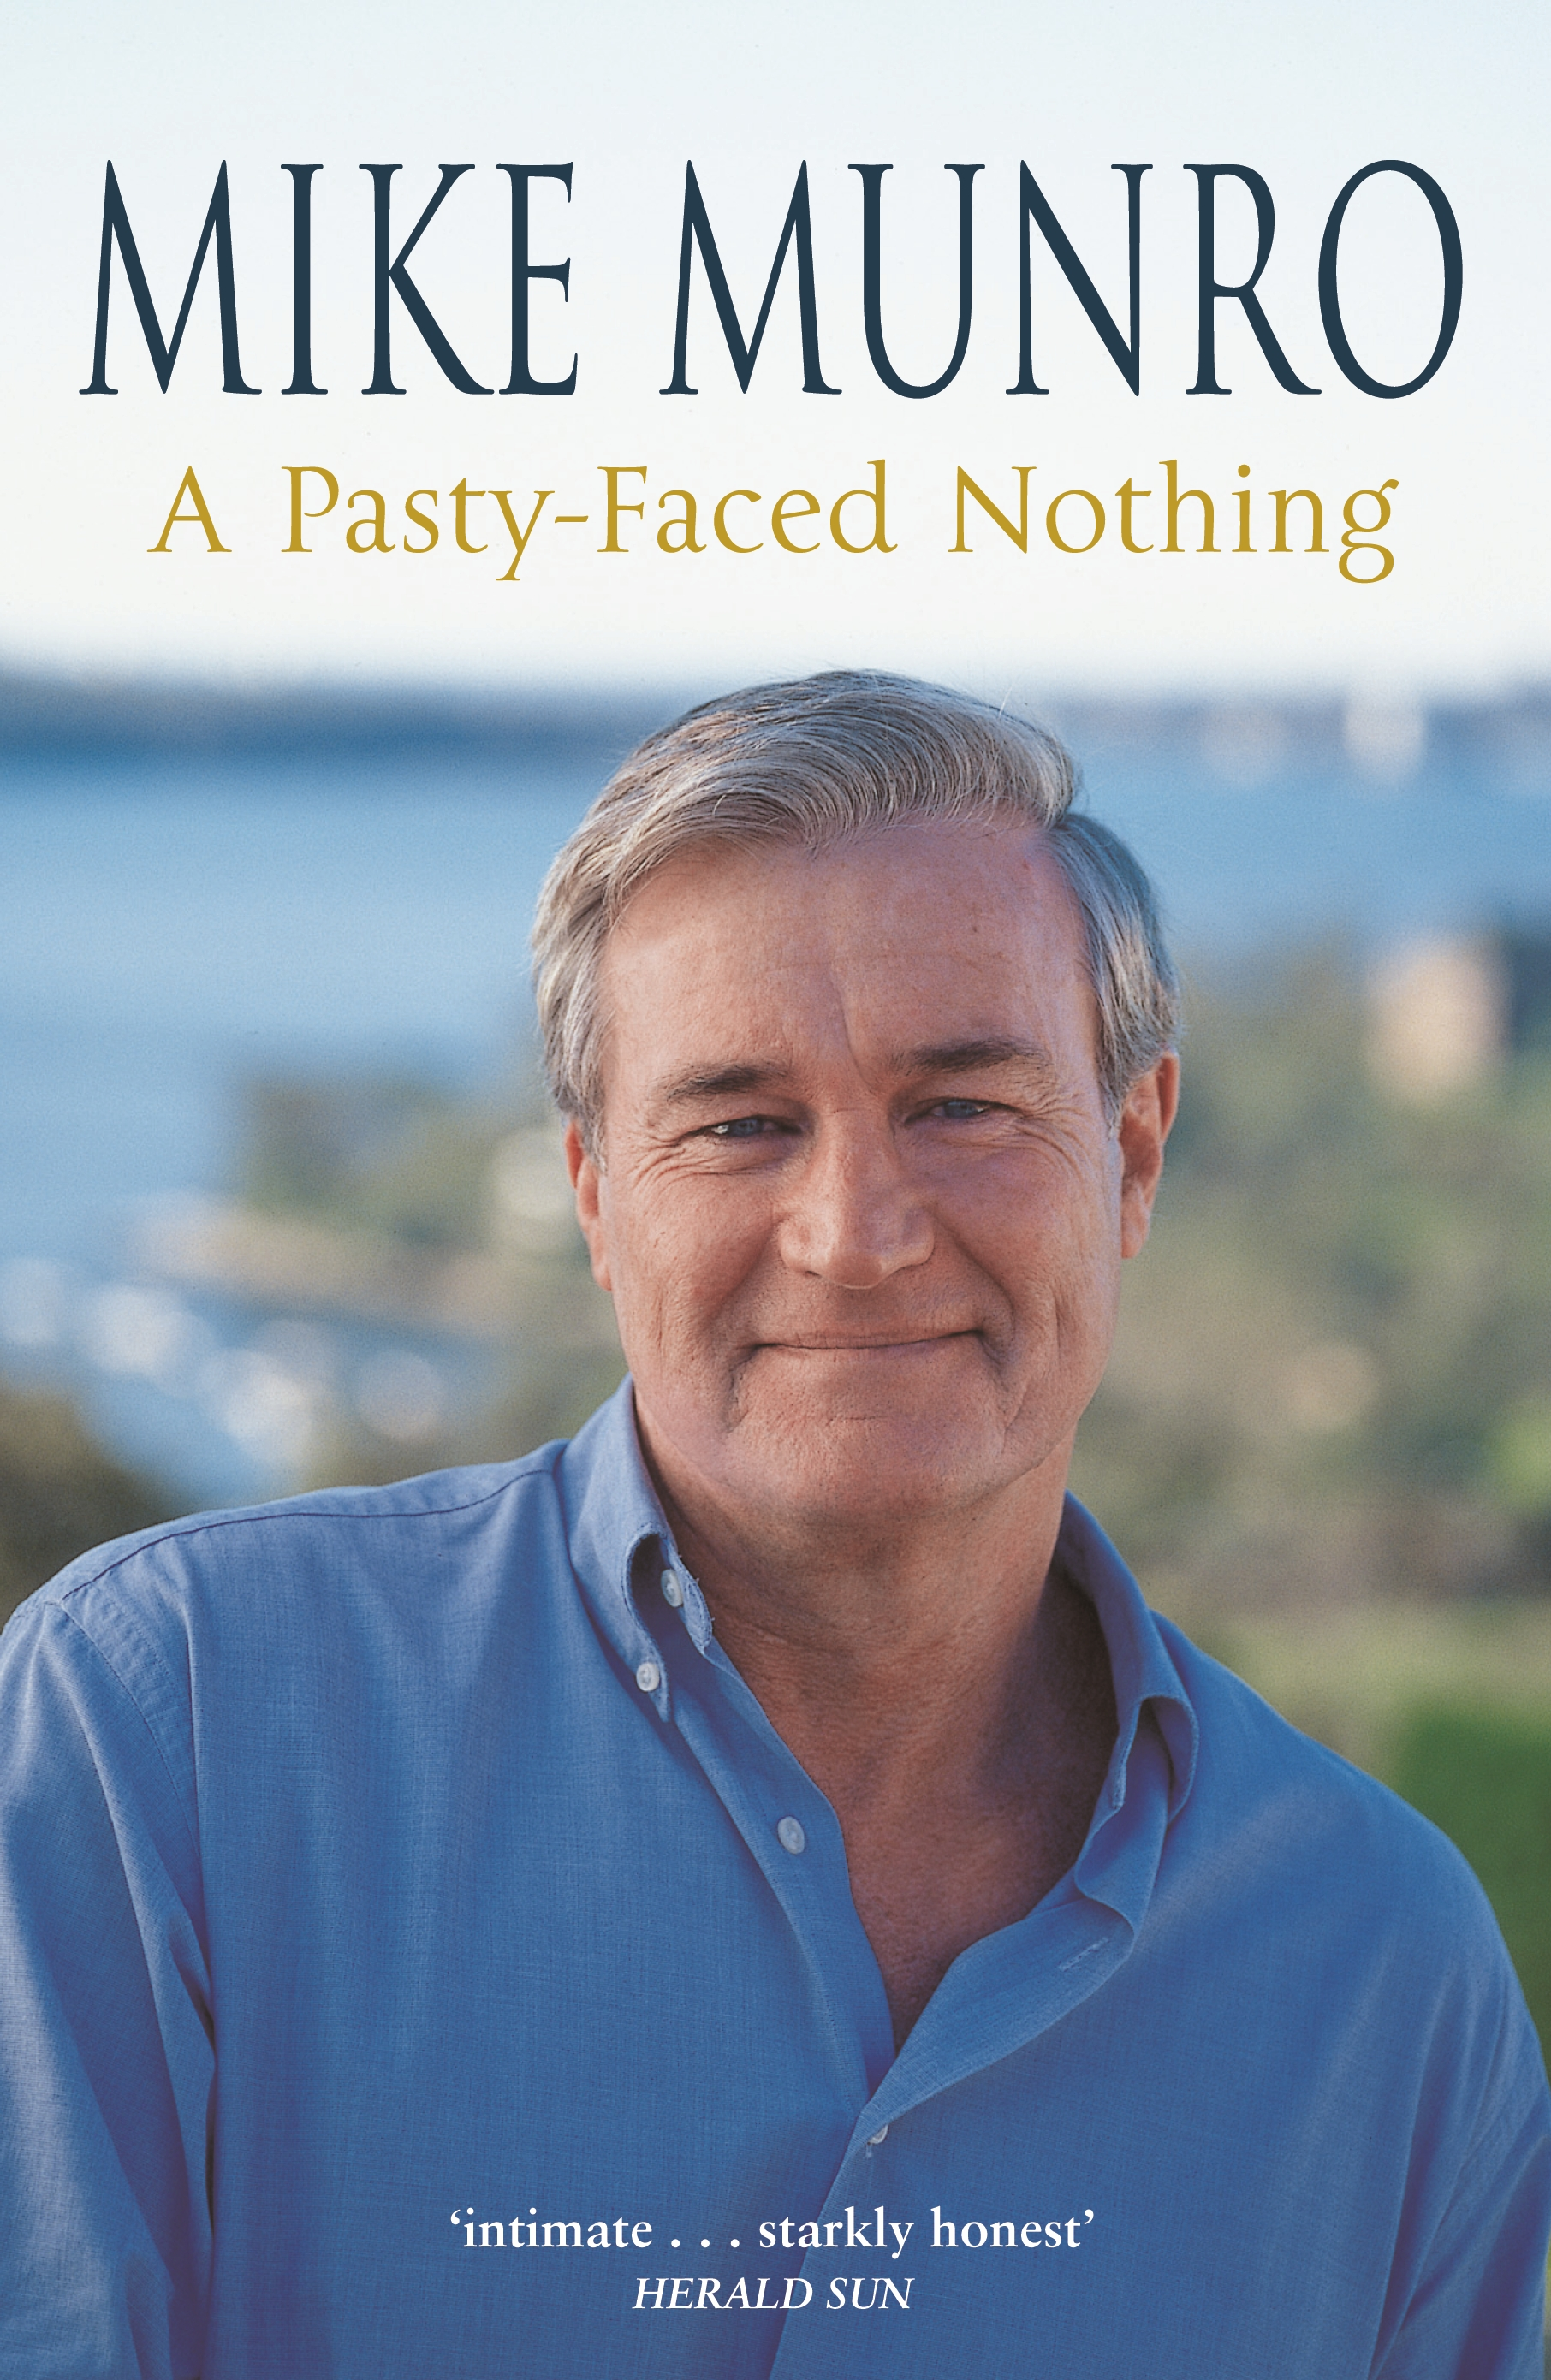 Synonyms and antonyms of pasty-faced in the English dictionary of synonyms